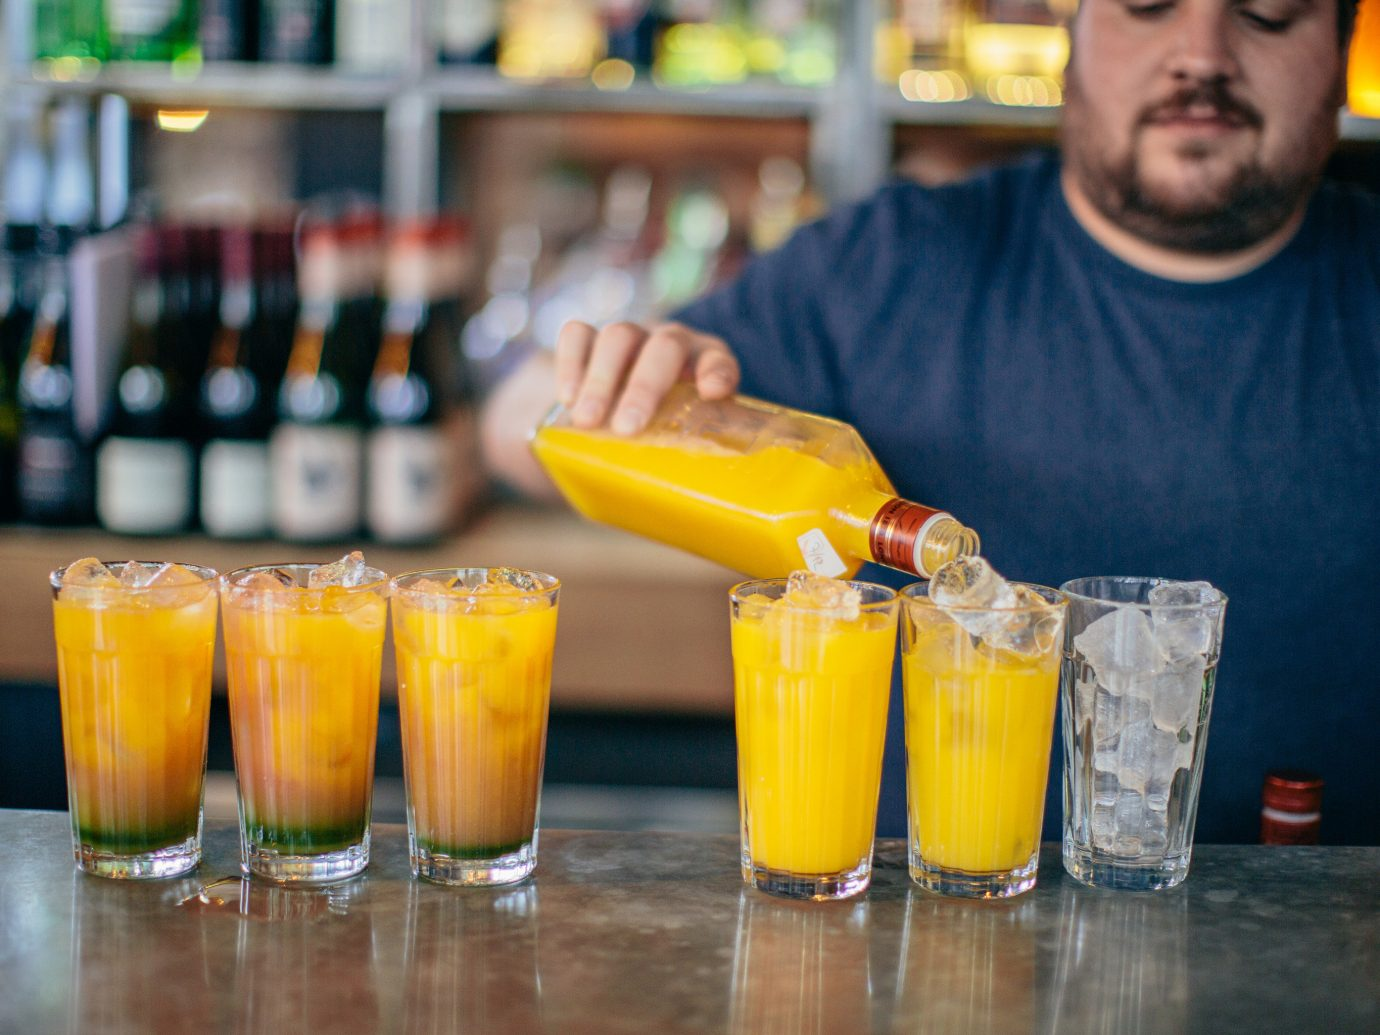 Budget Hotels London cup table Drink person indoor alcoholic beverage food cocktail alcohol drinking non alcoholic beverage distilled beverage beverage beer mai tai Bar liqueur orange fruit drink